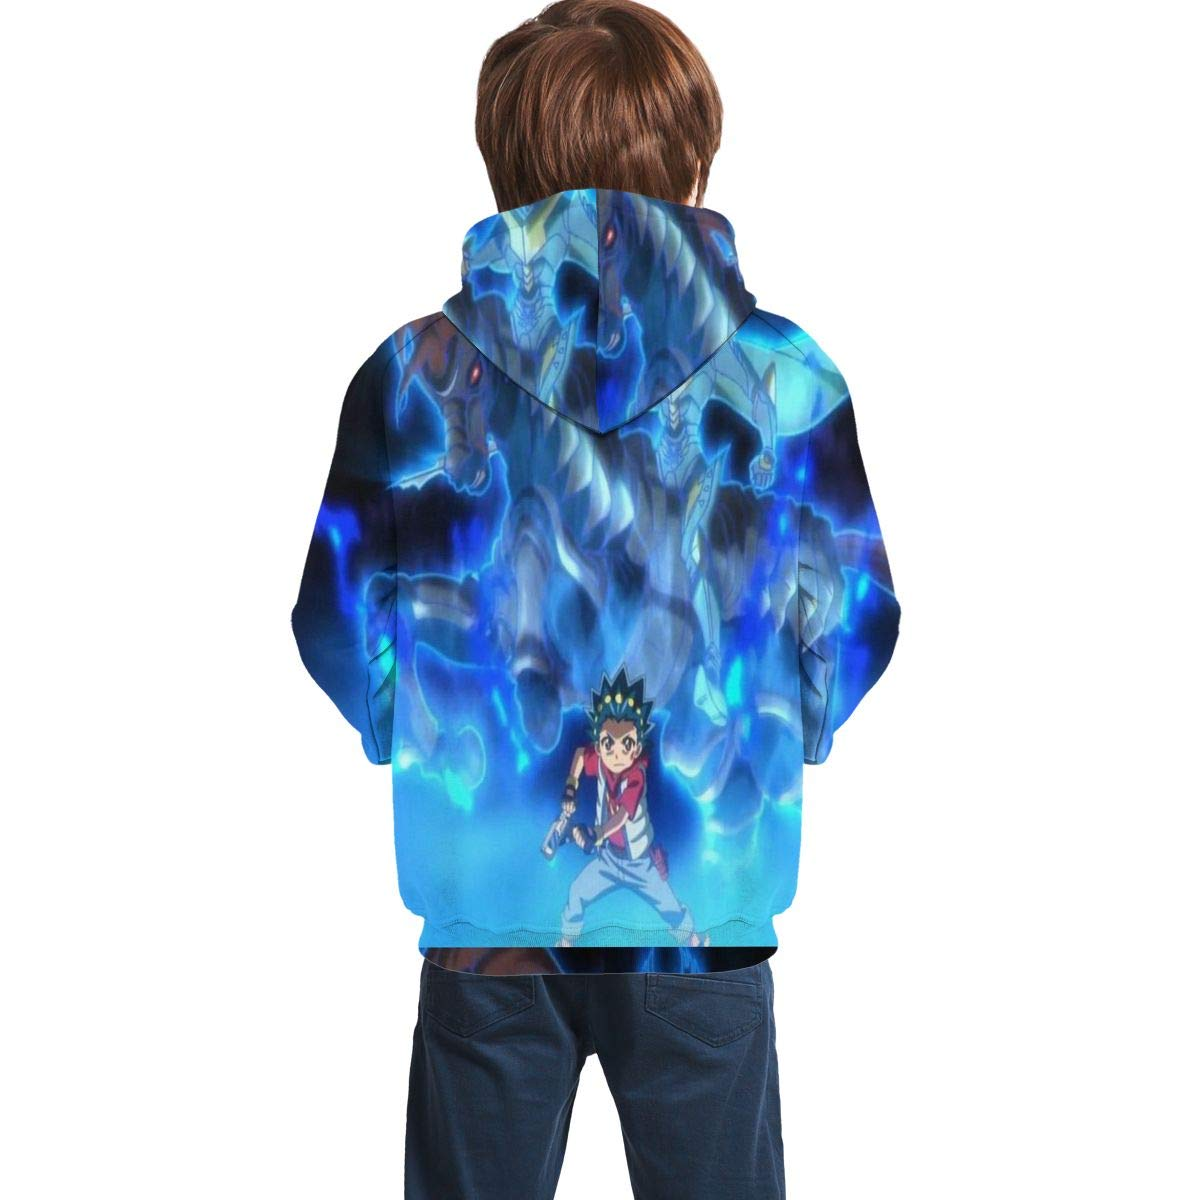 Childrens Hoodies Beybl-ade Bu-RST Evo-lution 3D Print Unisex Pullover Hooded Sweatshirts for Boys//Girls//Teen//Kids